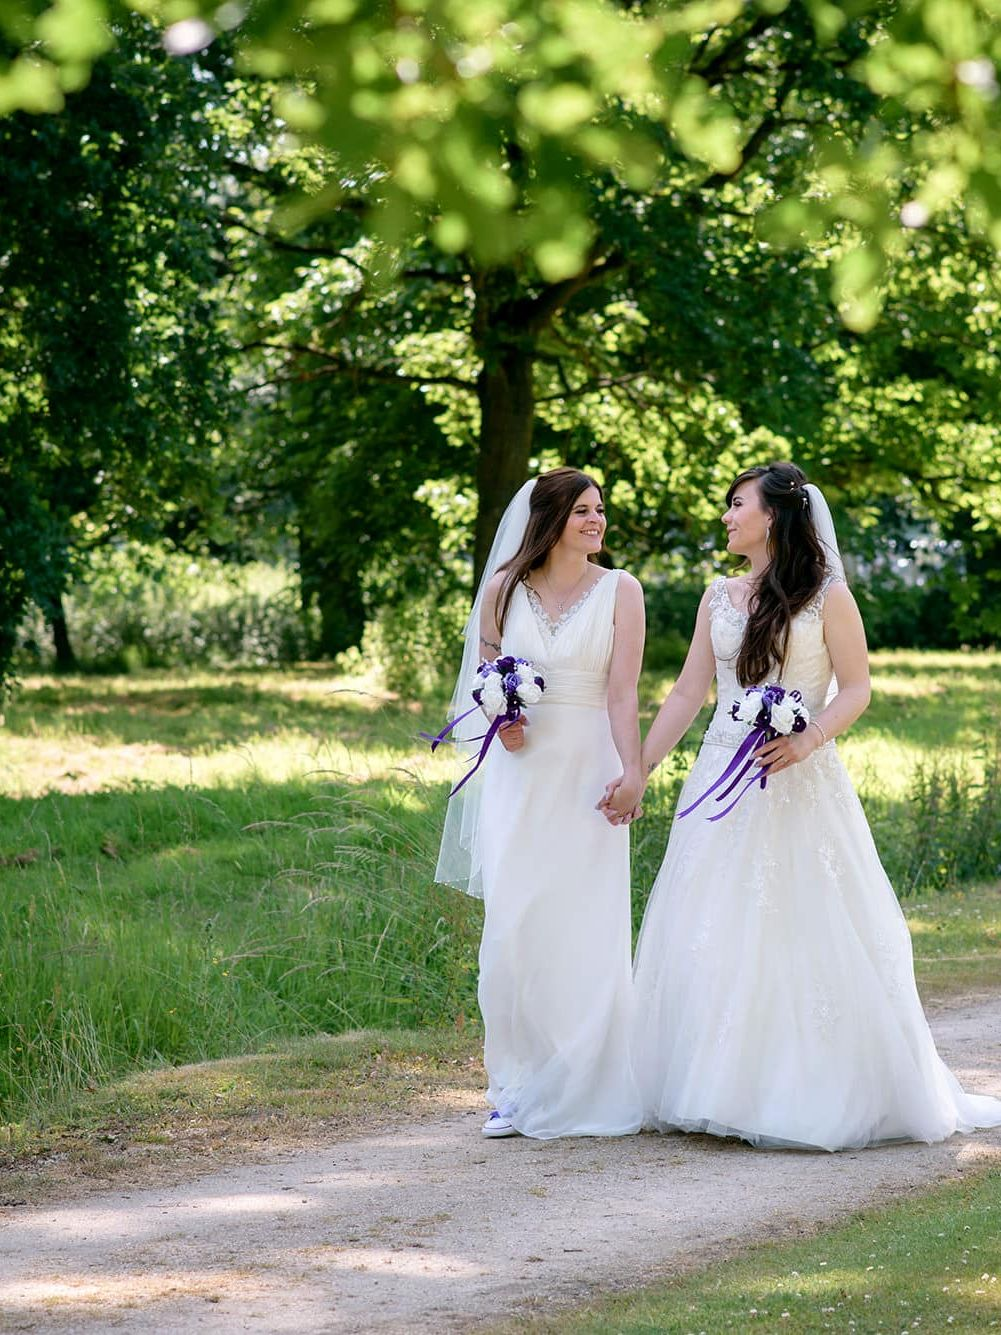 Informal and relaxed oxford wedding photography at Milton Hill House in Oxfordshire